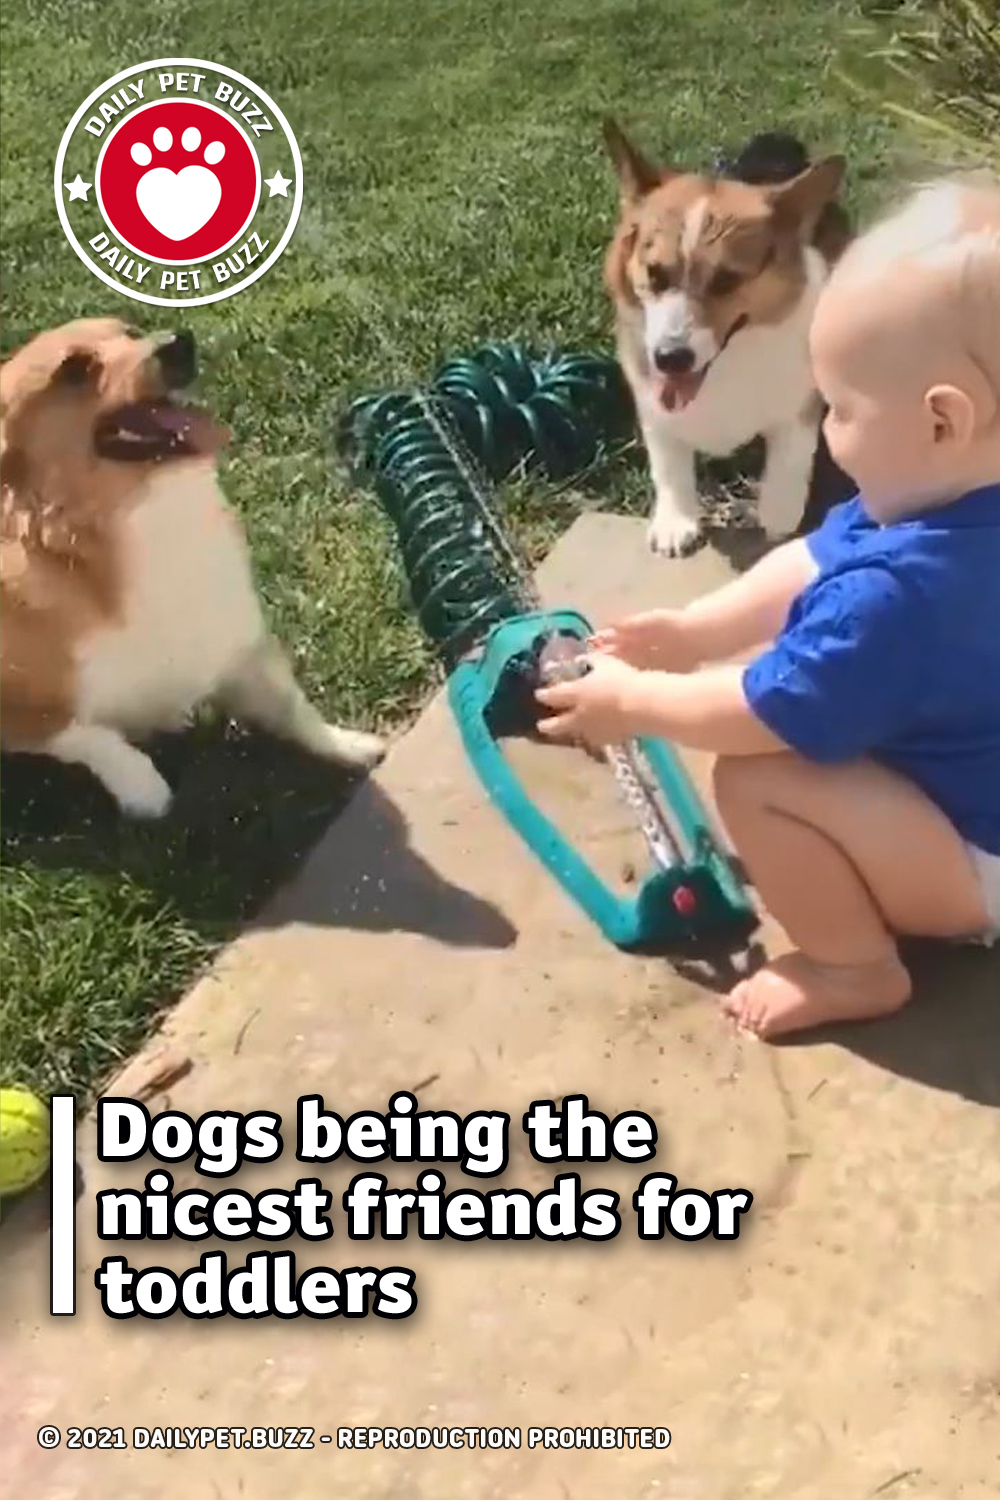 Dogs being the nicest friends for toddlers